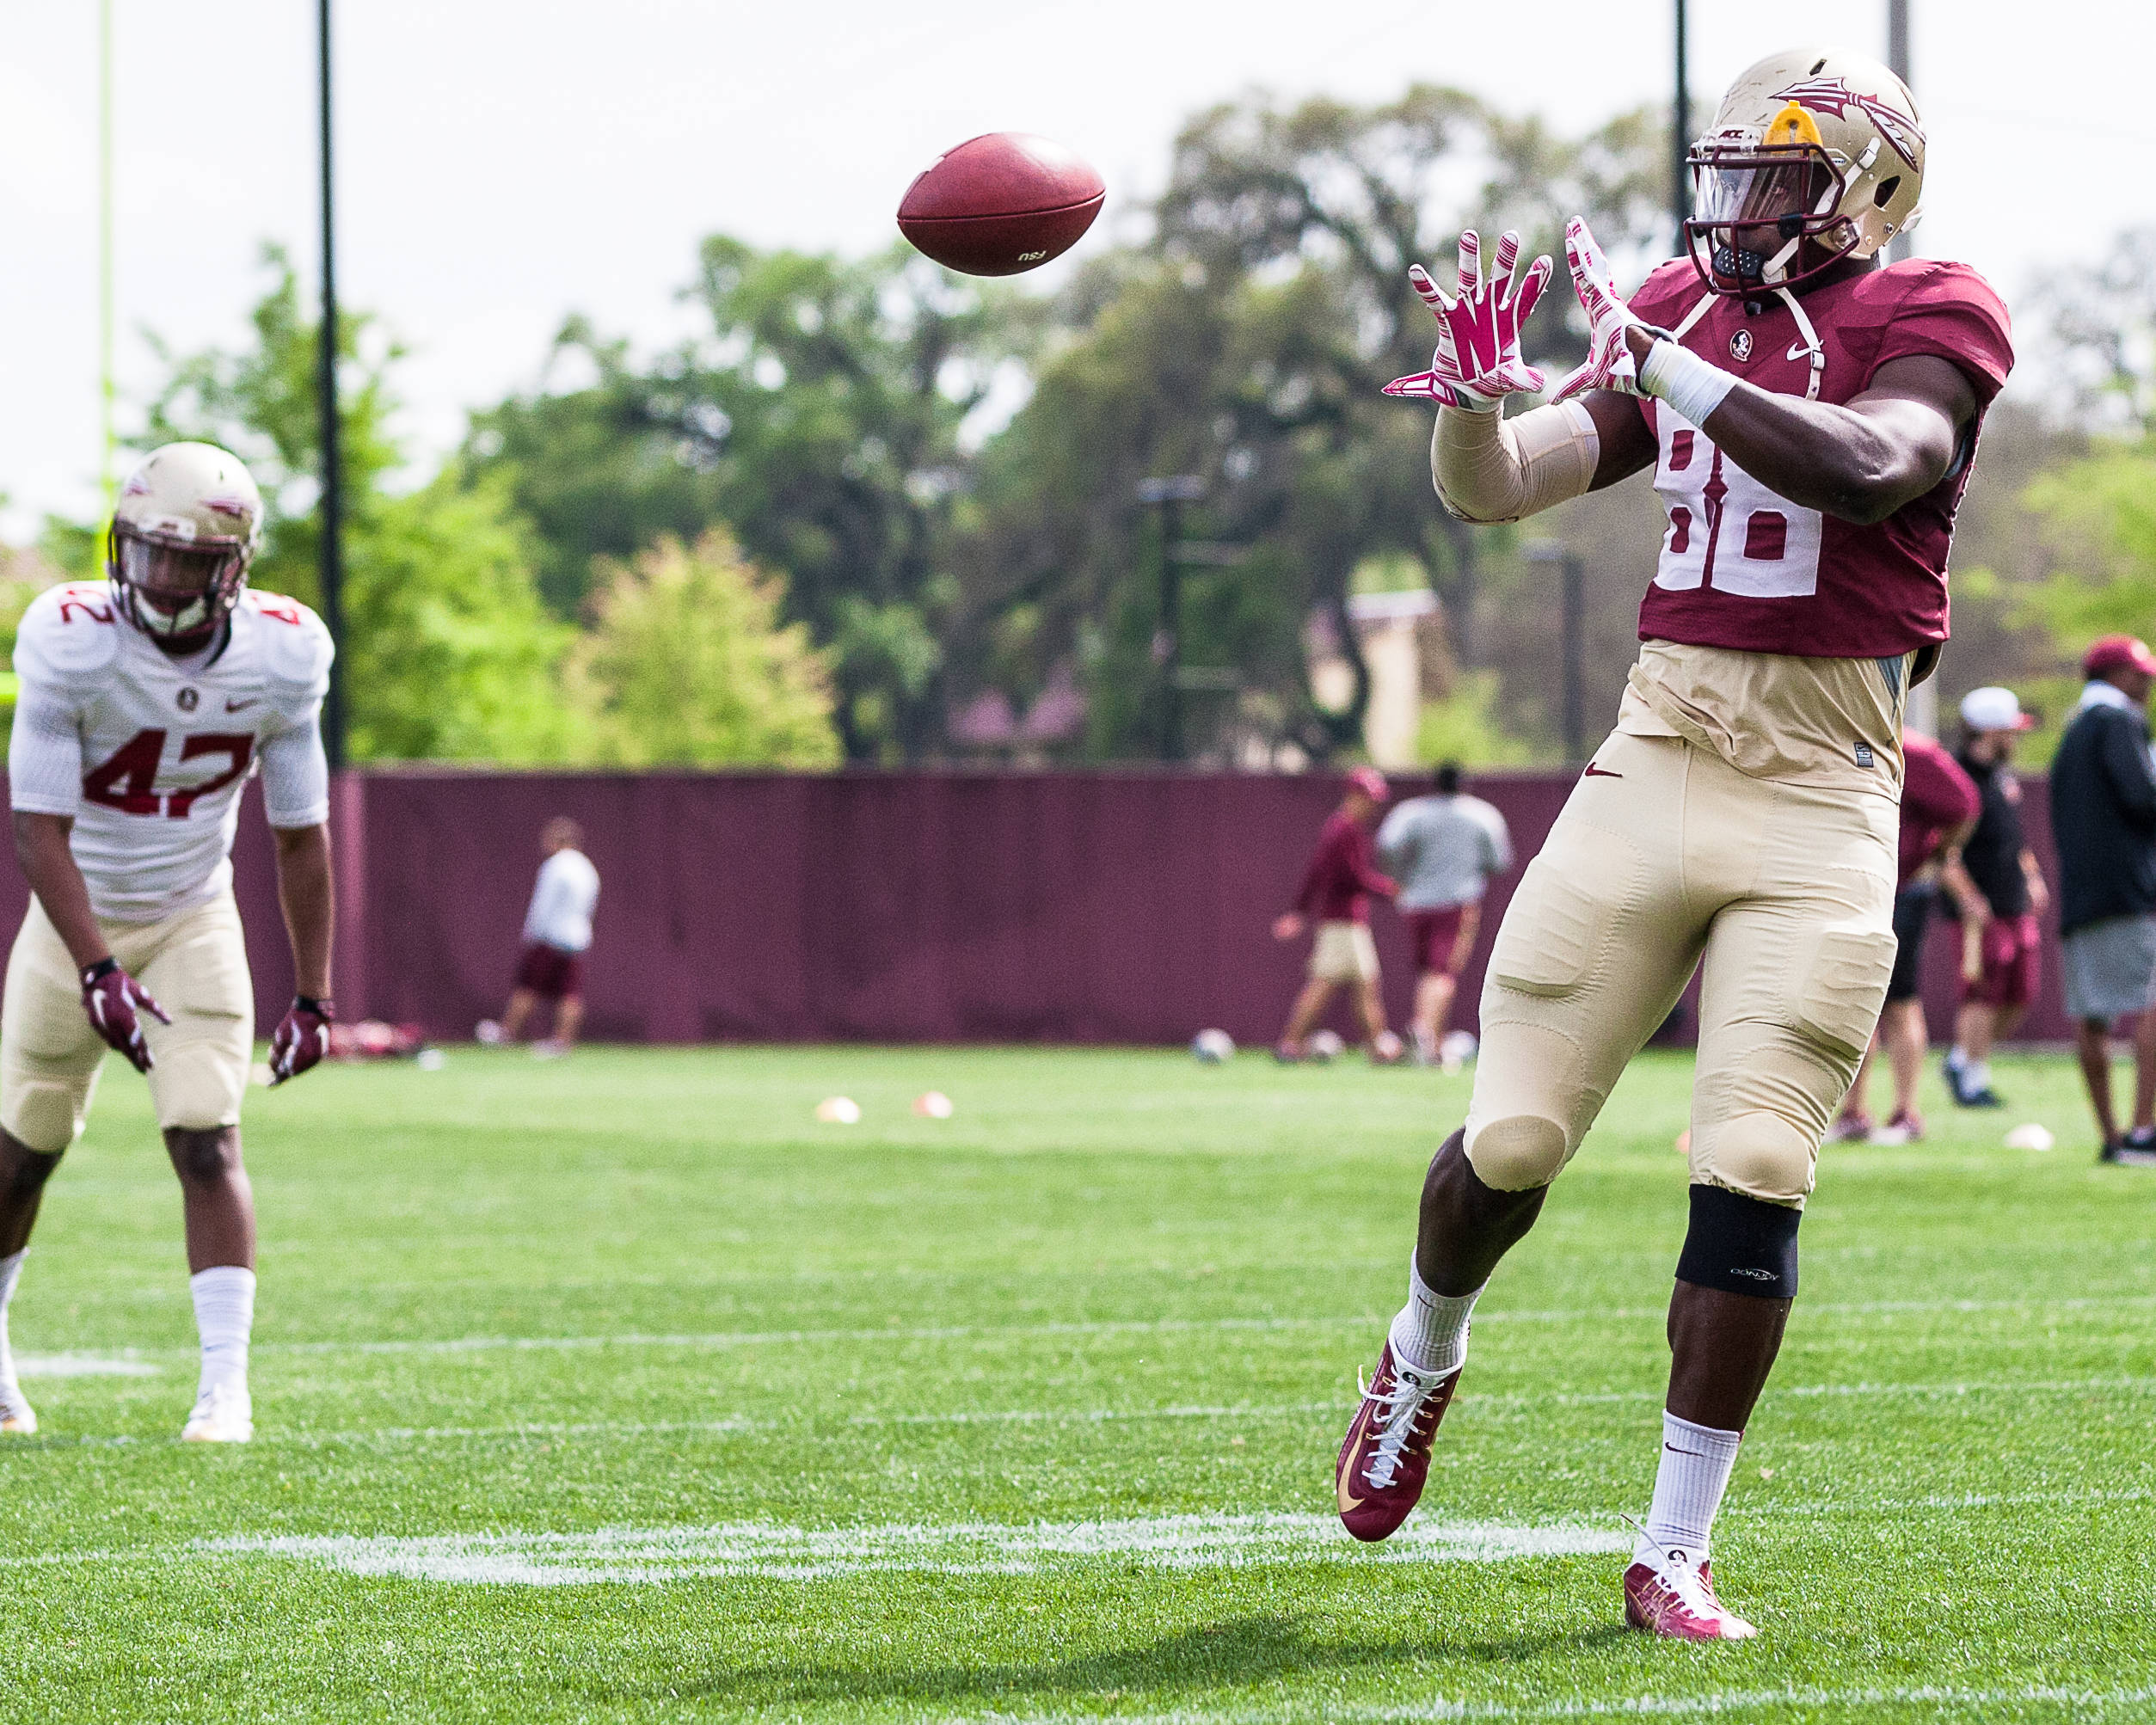 Friday Spring Practice: 3.27.15